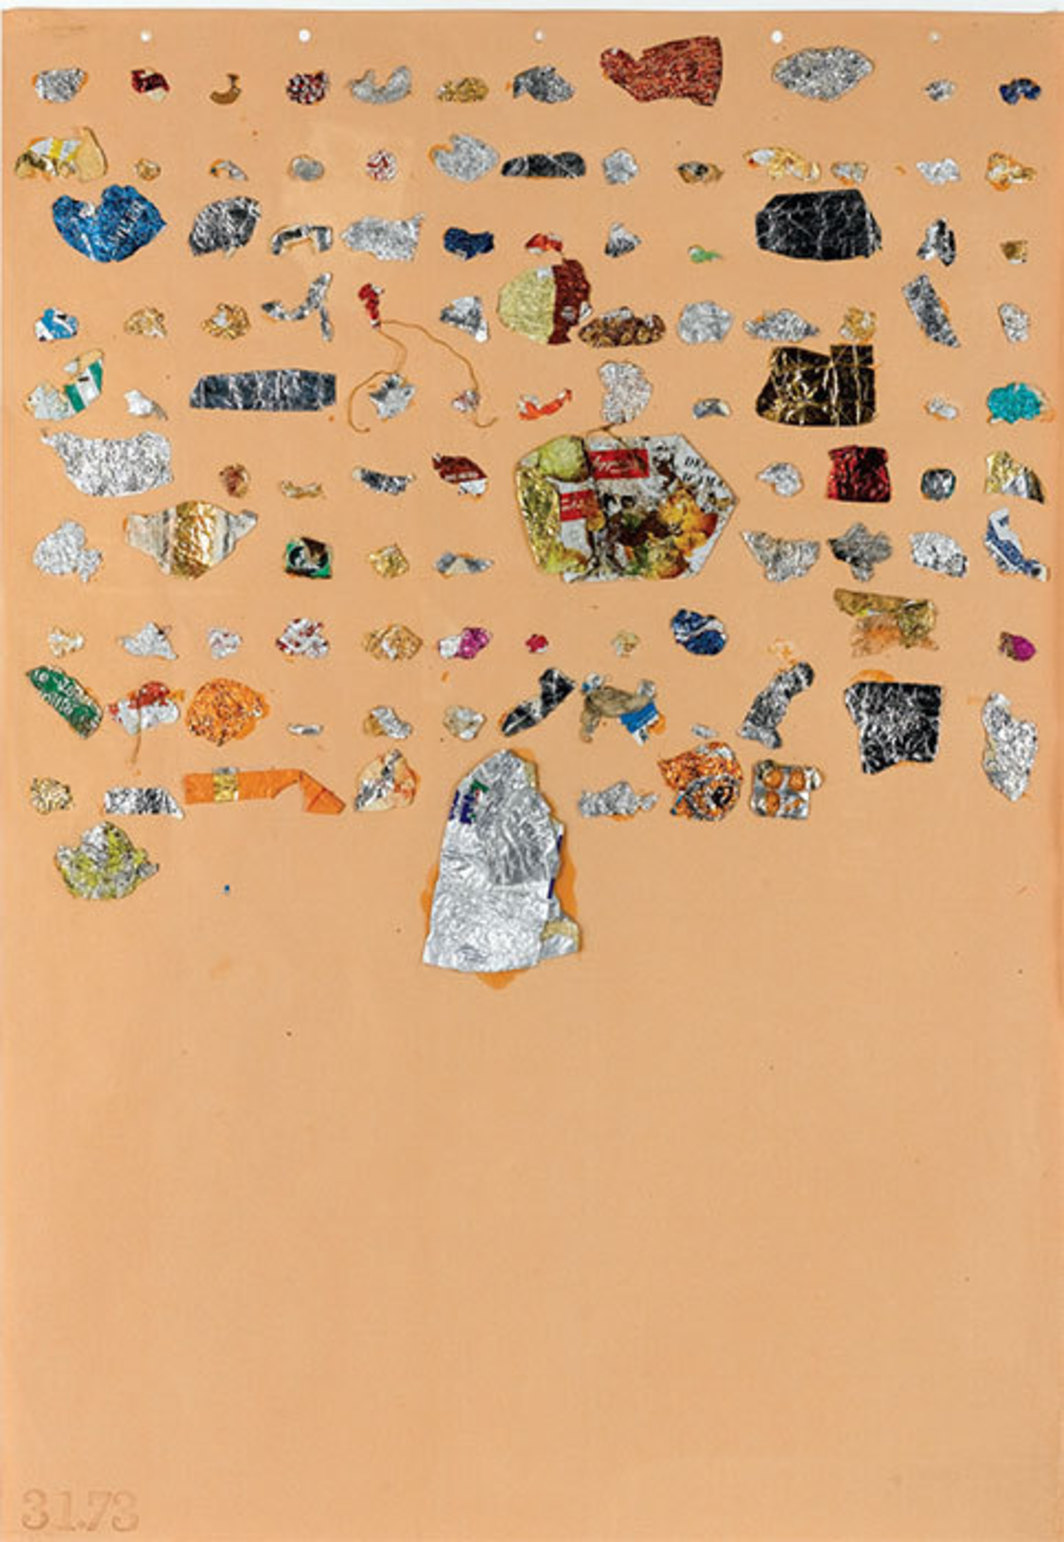 "John Armleder, Untitled, 1982, collage on paper, 26 x 19""."